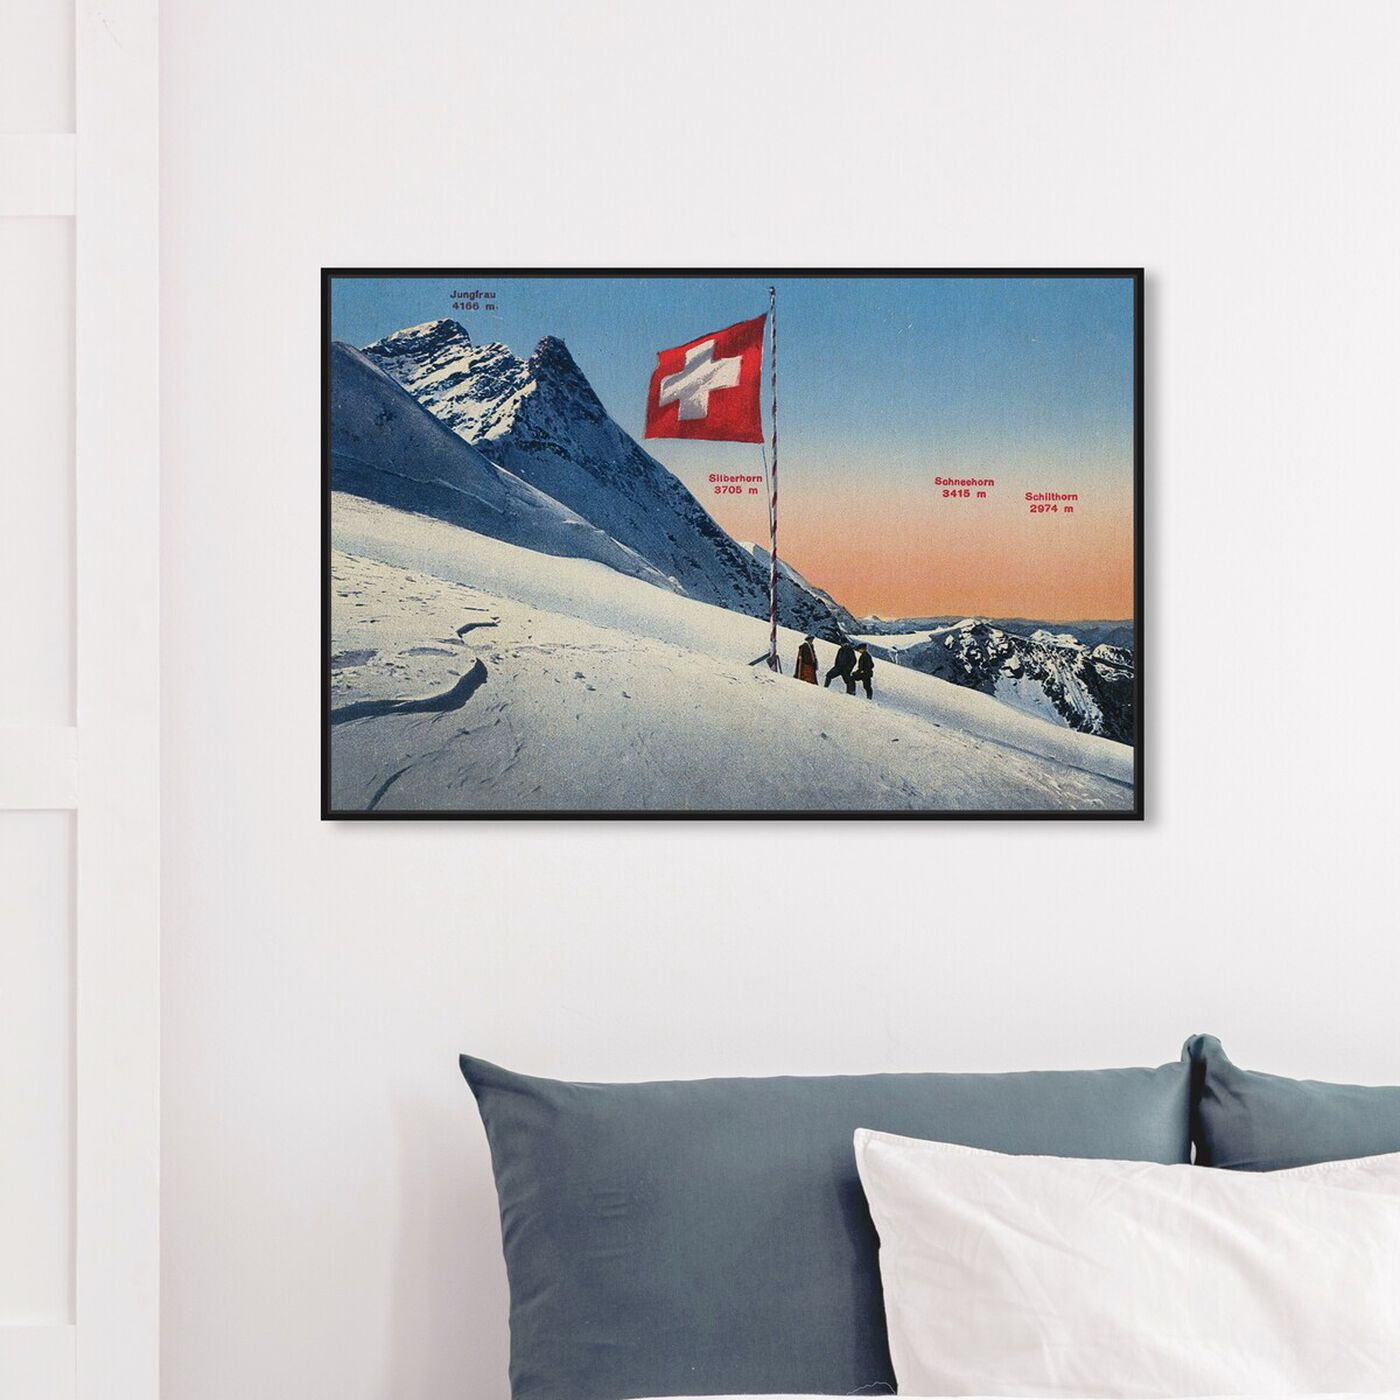 Hanging view of Jungfrau featuring sports and teams and skiing art.